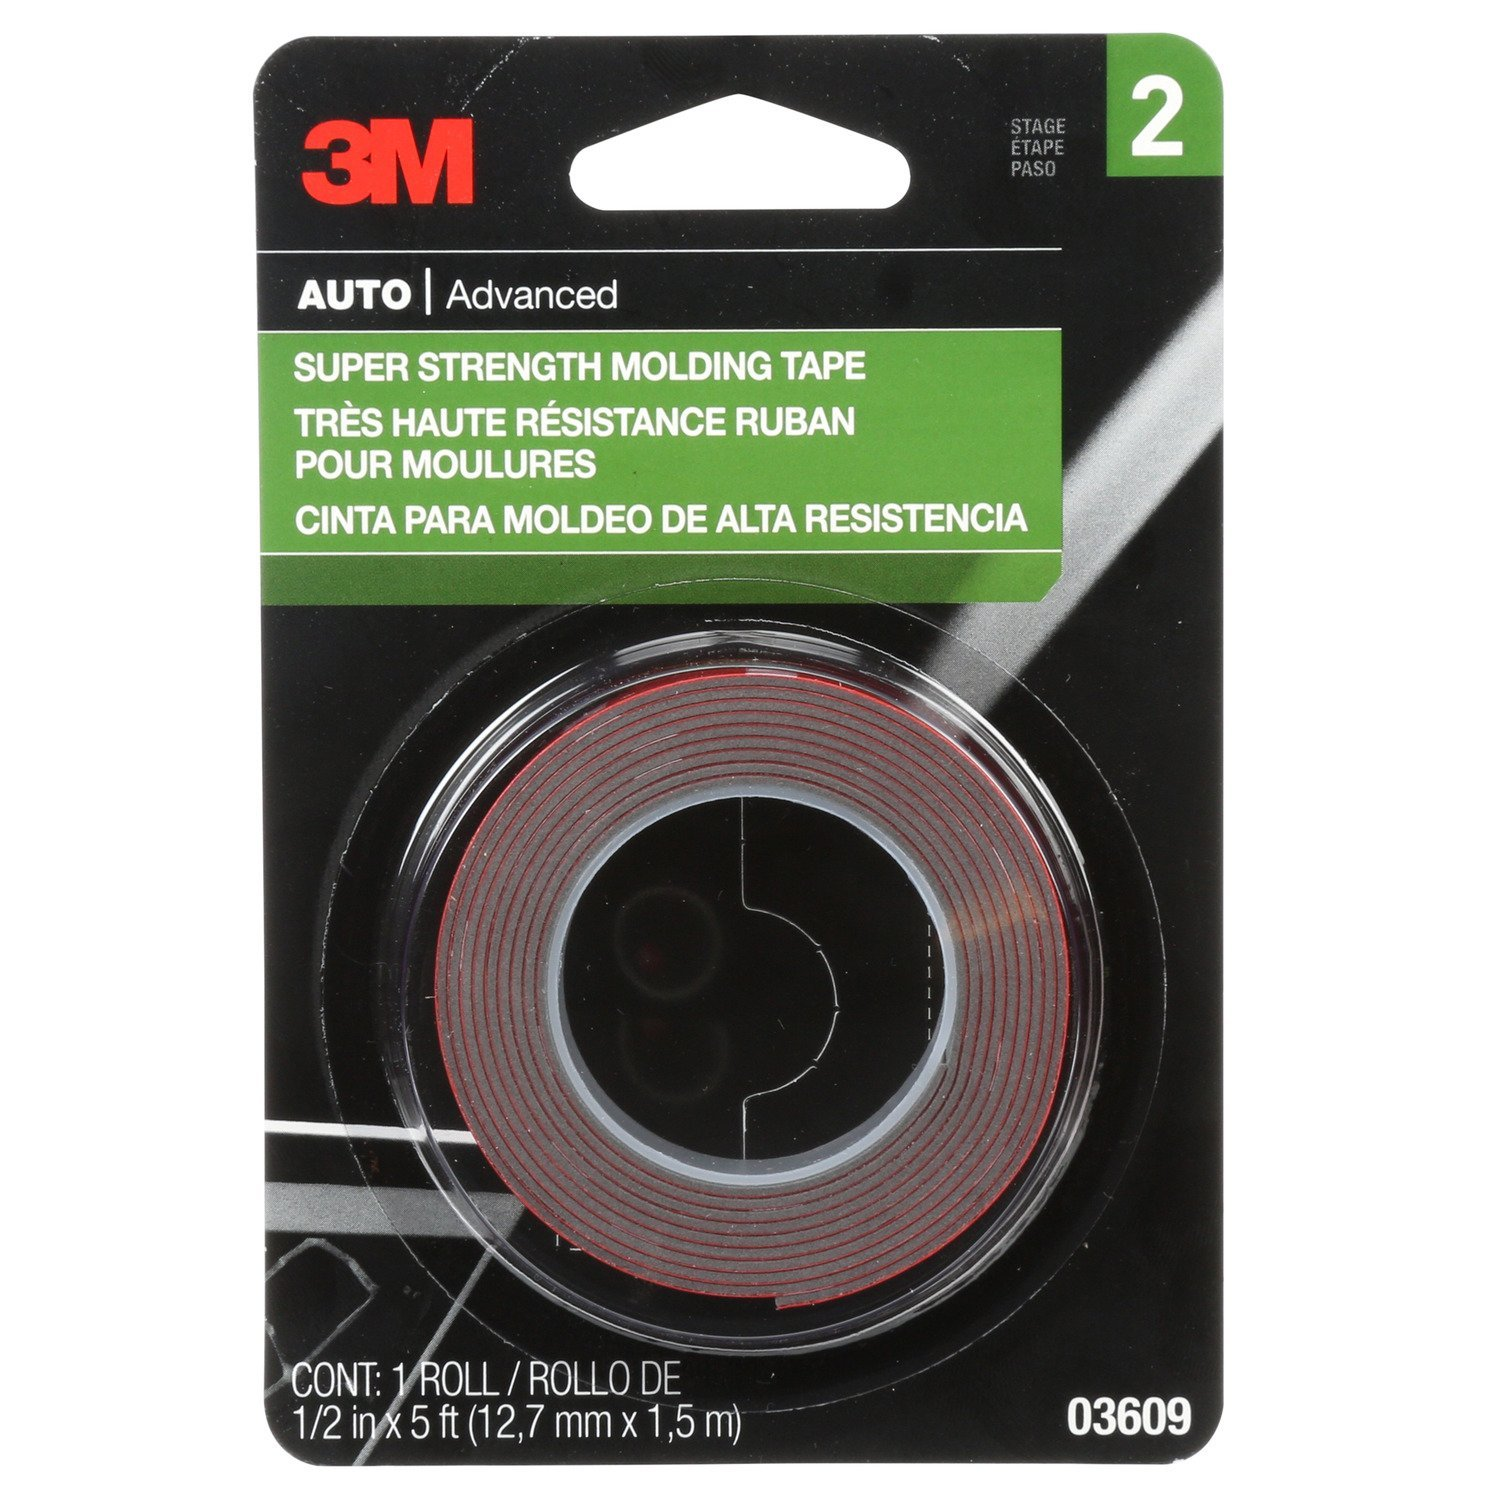 3M Super Strength Molding Tape, 03609, 1/2 in x 5 ft